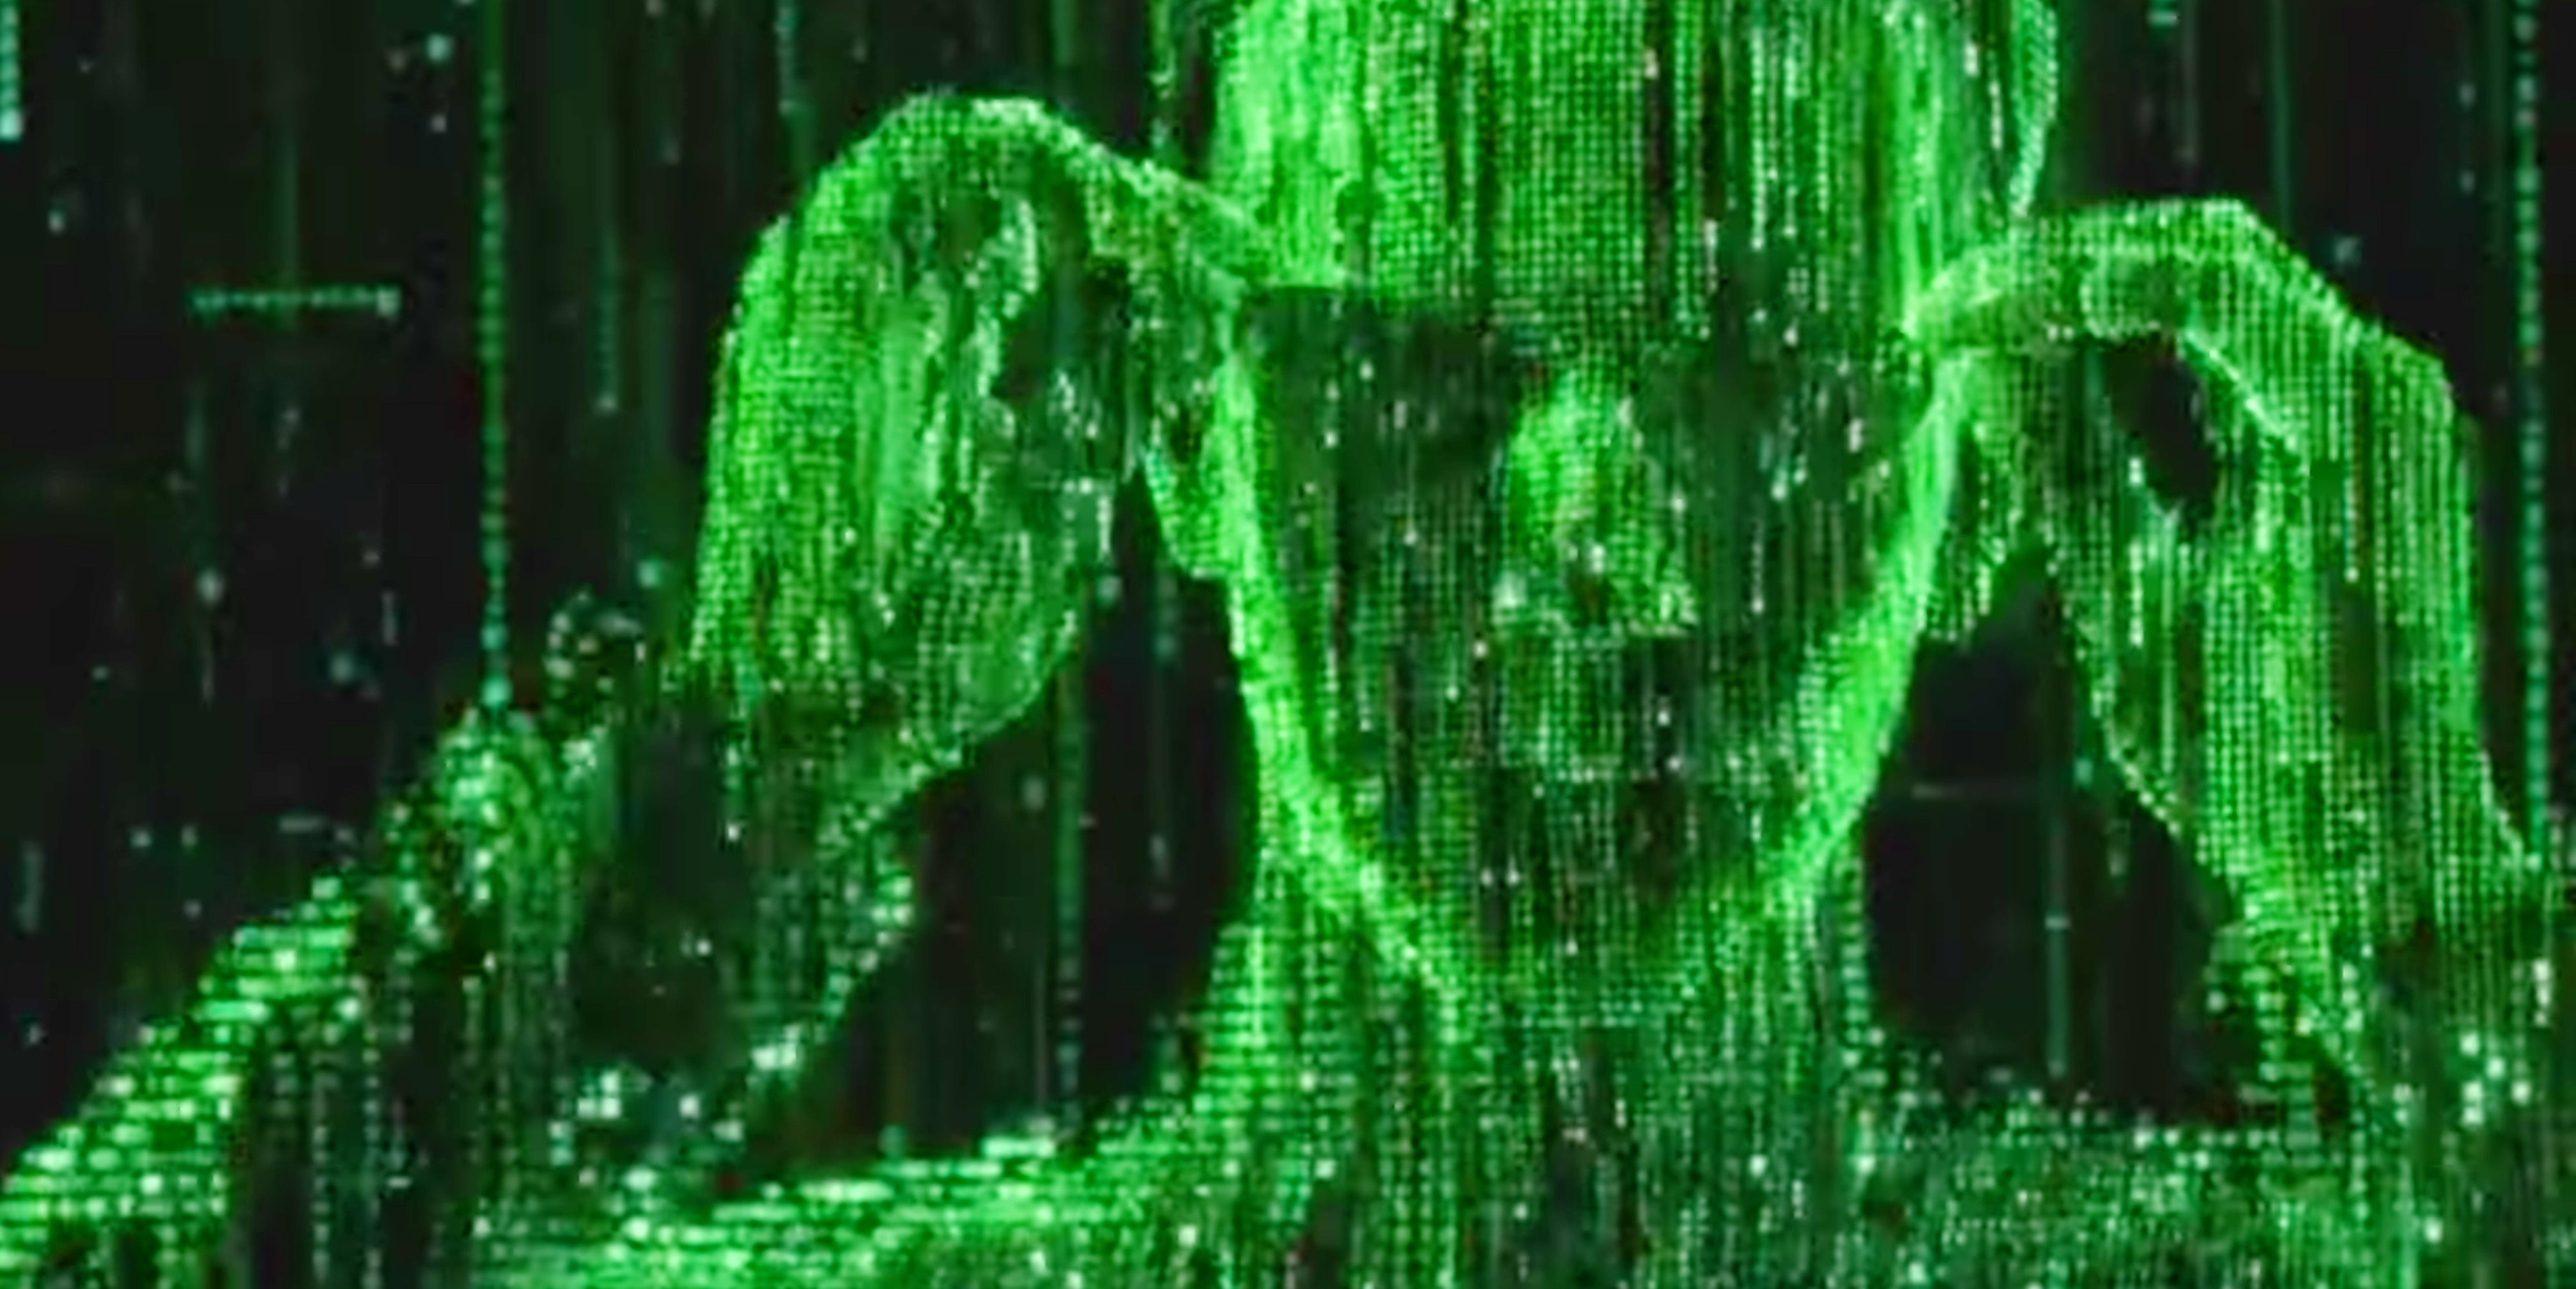 Researchers Invent 'The Matrix'-Style Body Energy ...